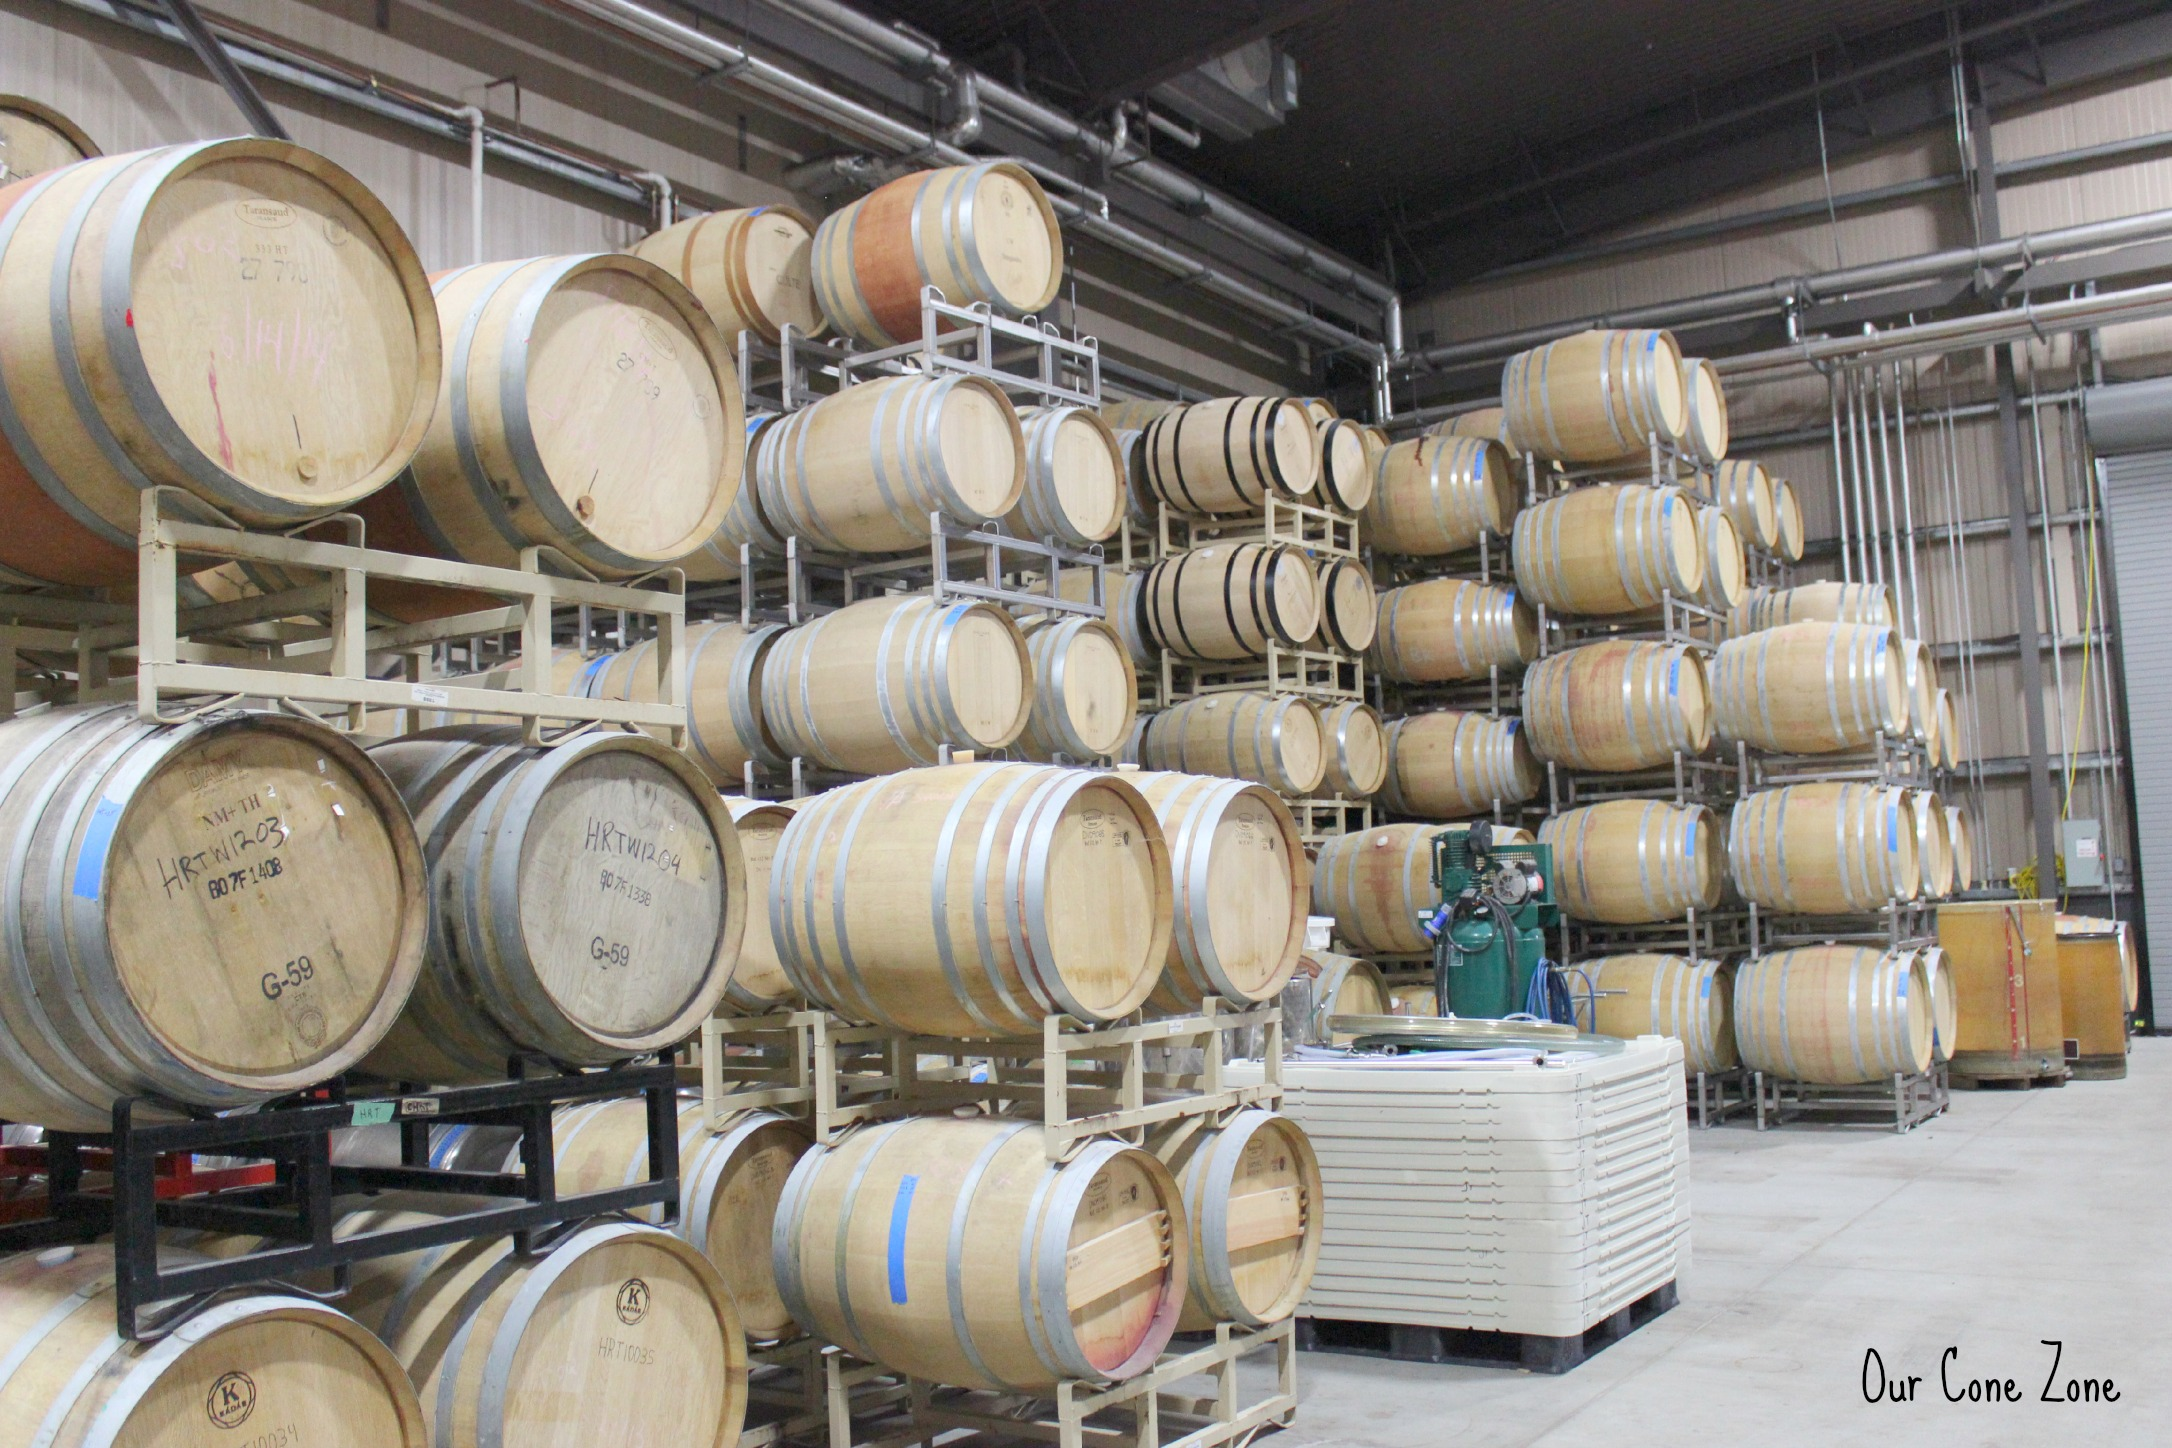 Many wine barrels